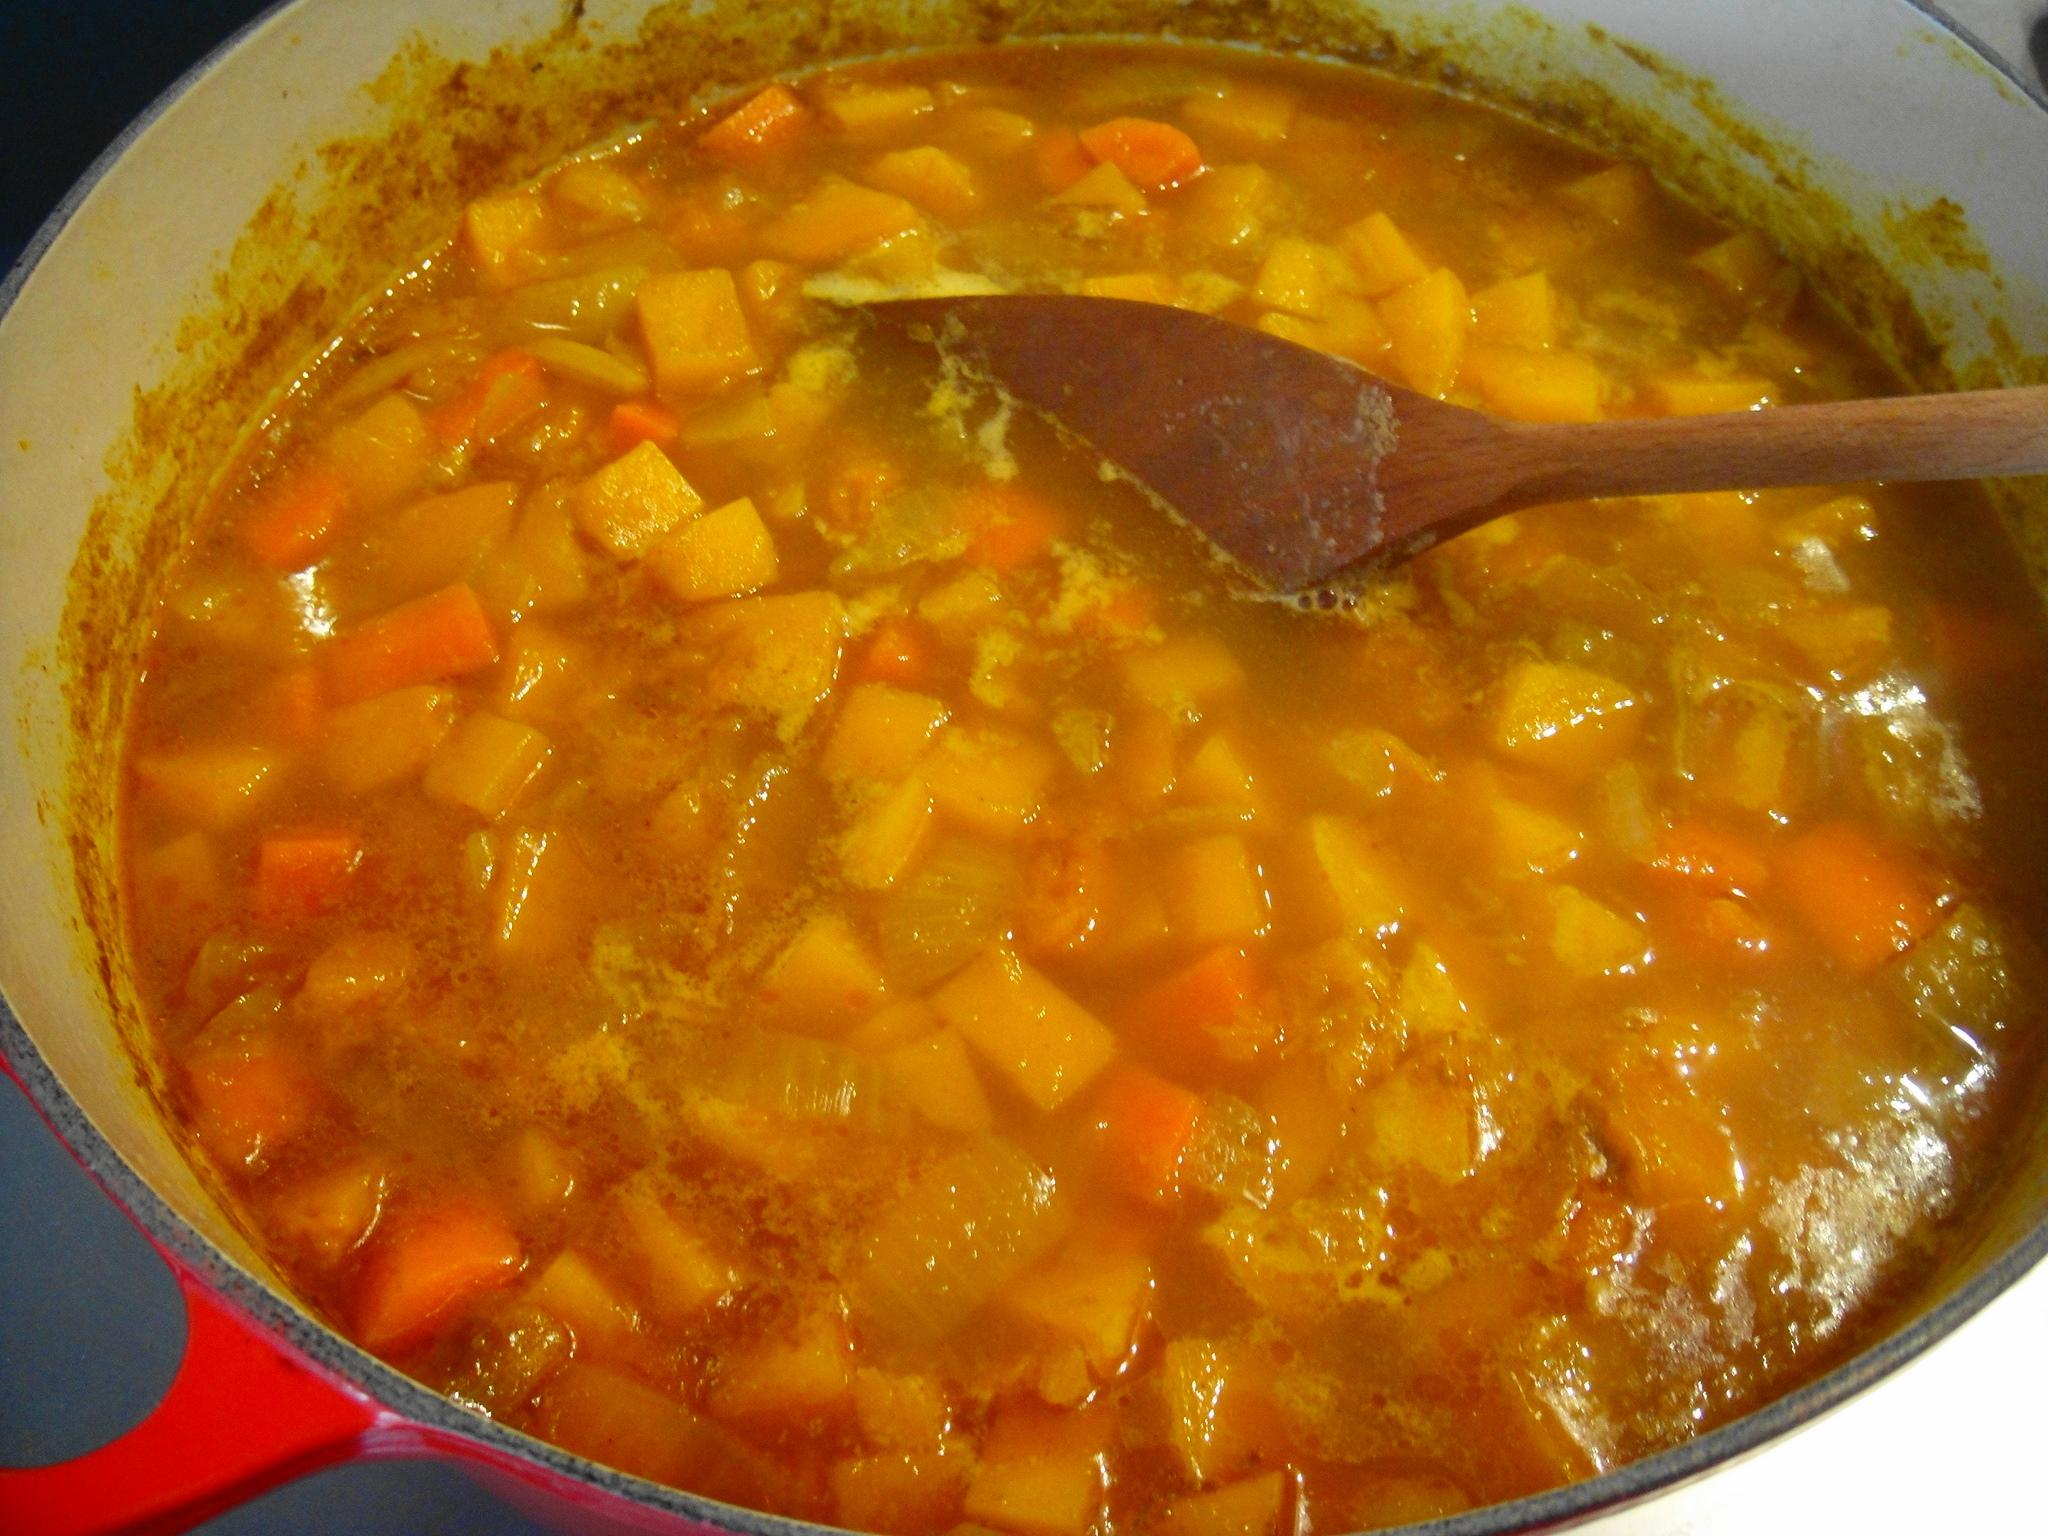 squash soup cooked